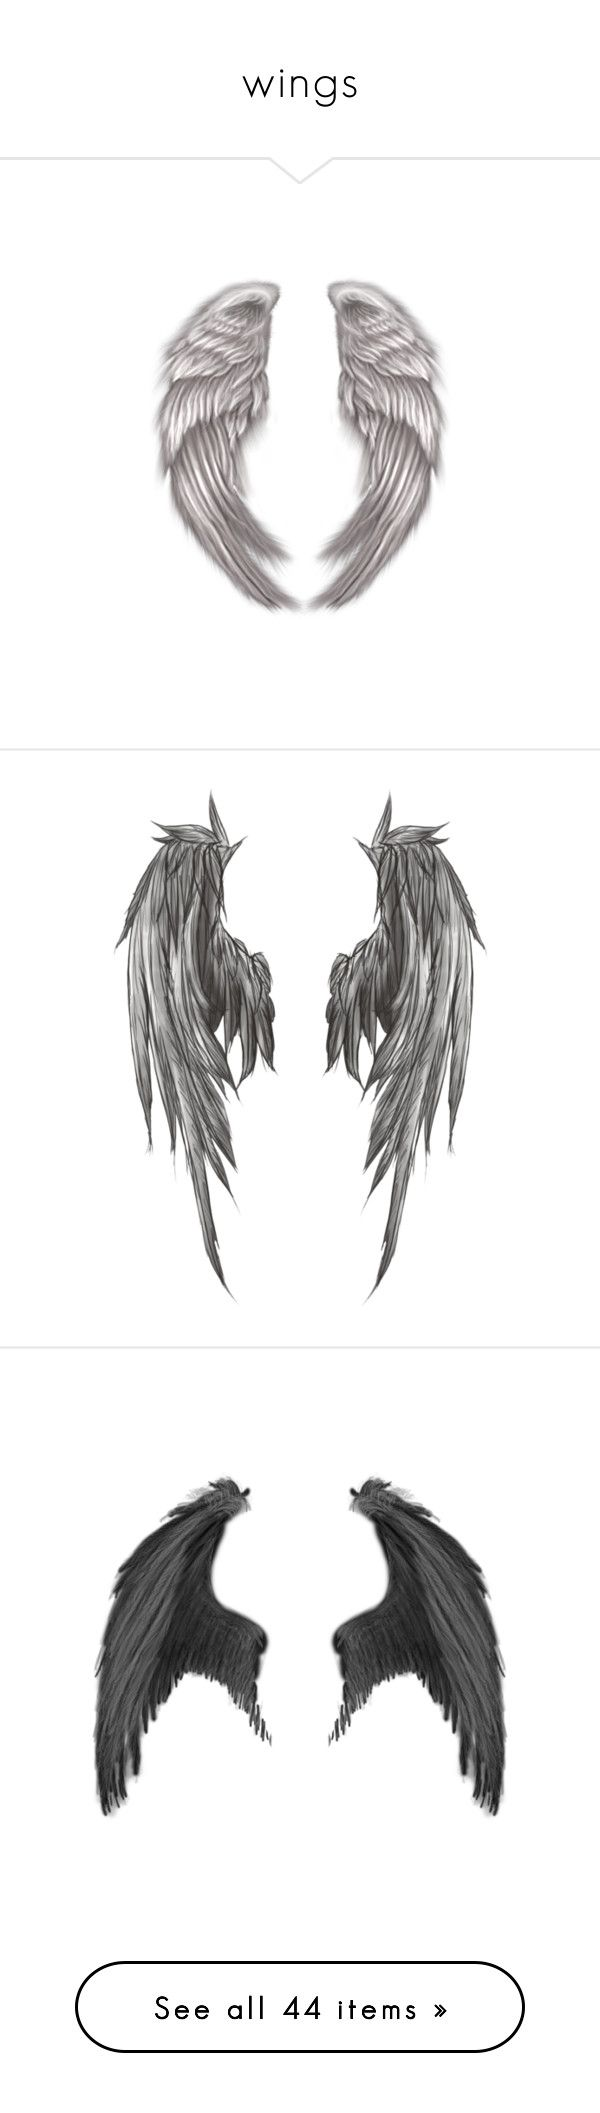 """wings"" by cecilie-smukke ❤ liked on Polyvore featuring wings, backgrounds, fillers, art, other, scenery, dolls, filler, tattoos and drawings"